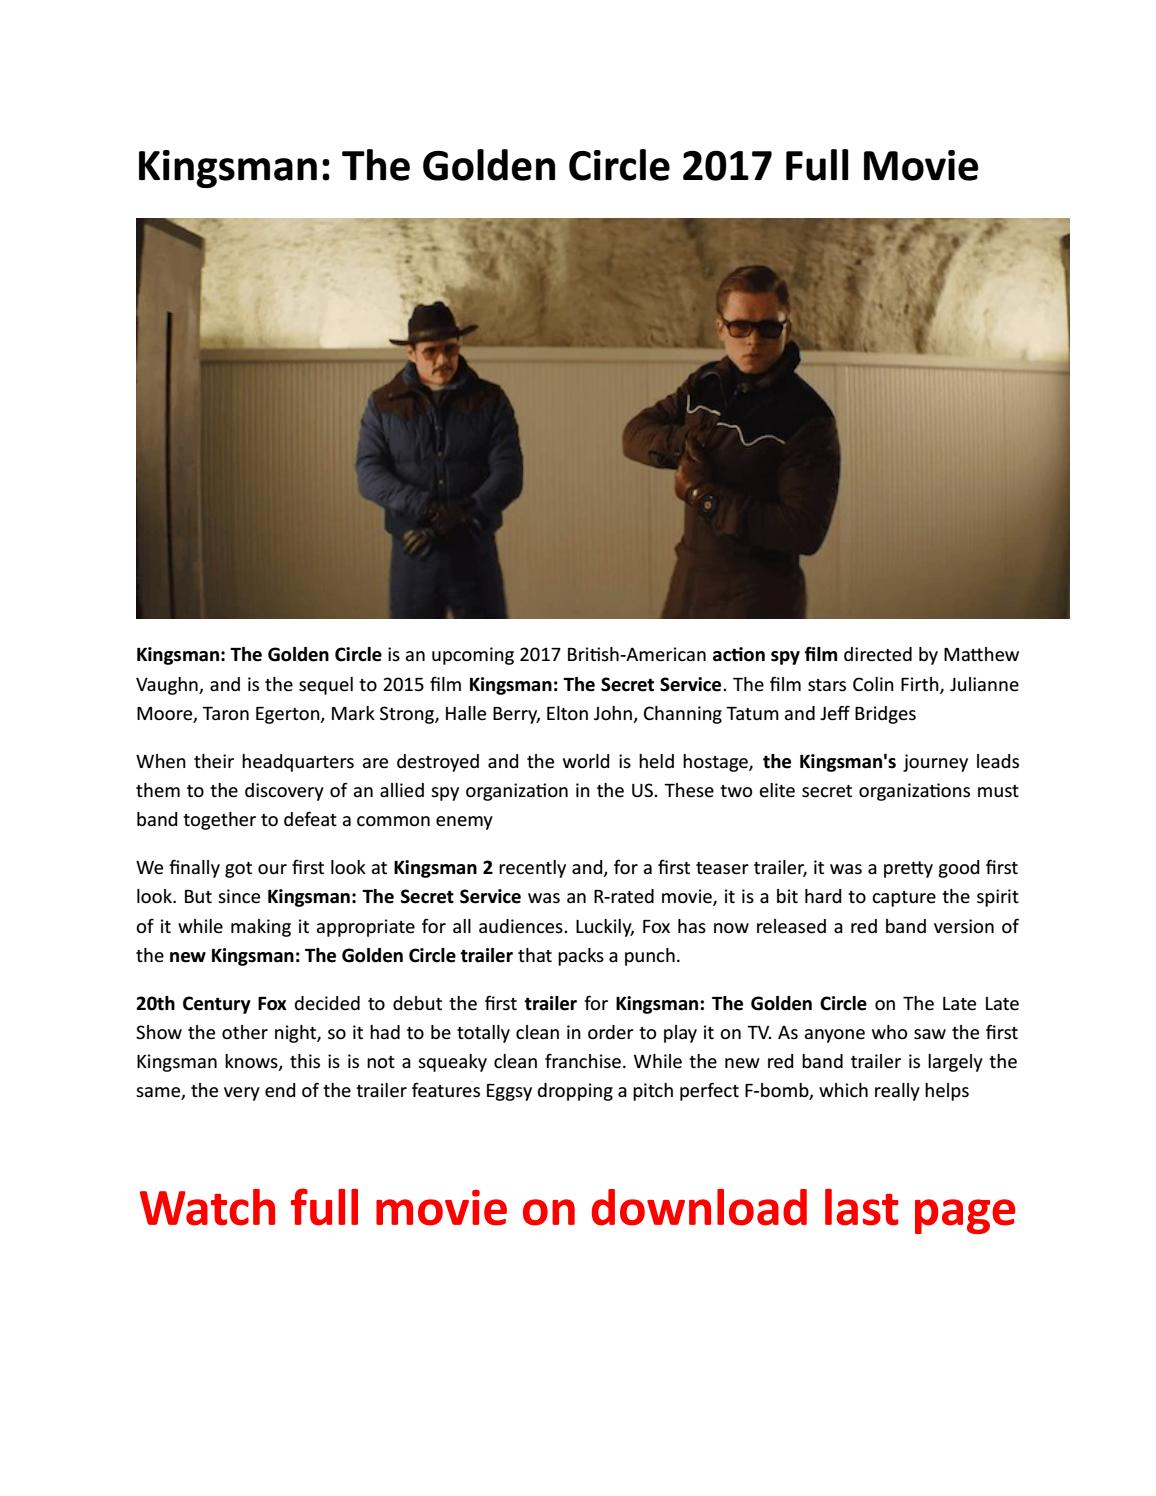 Kingsman The Golden Circle 2017download Free Movies By Majorie J Thomas Issuu